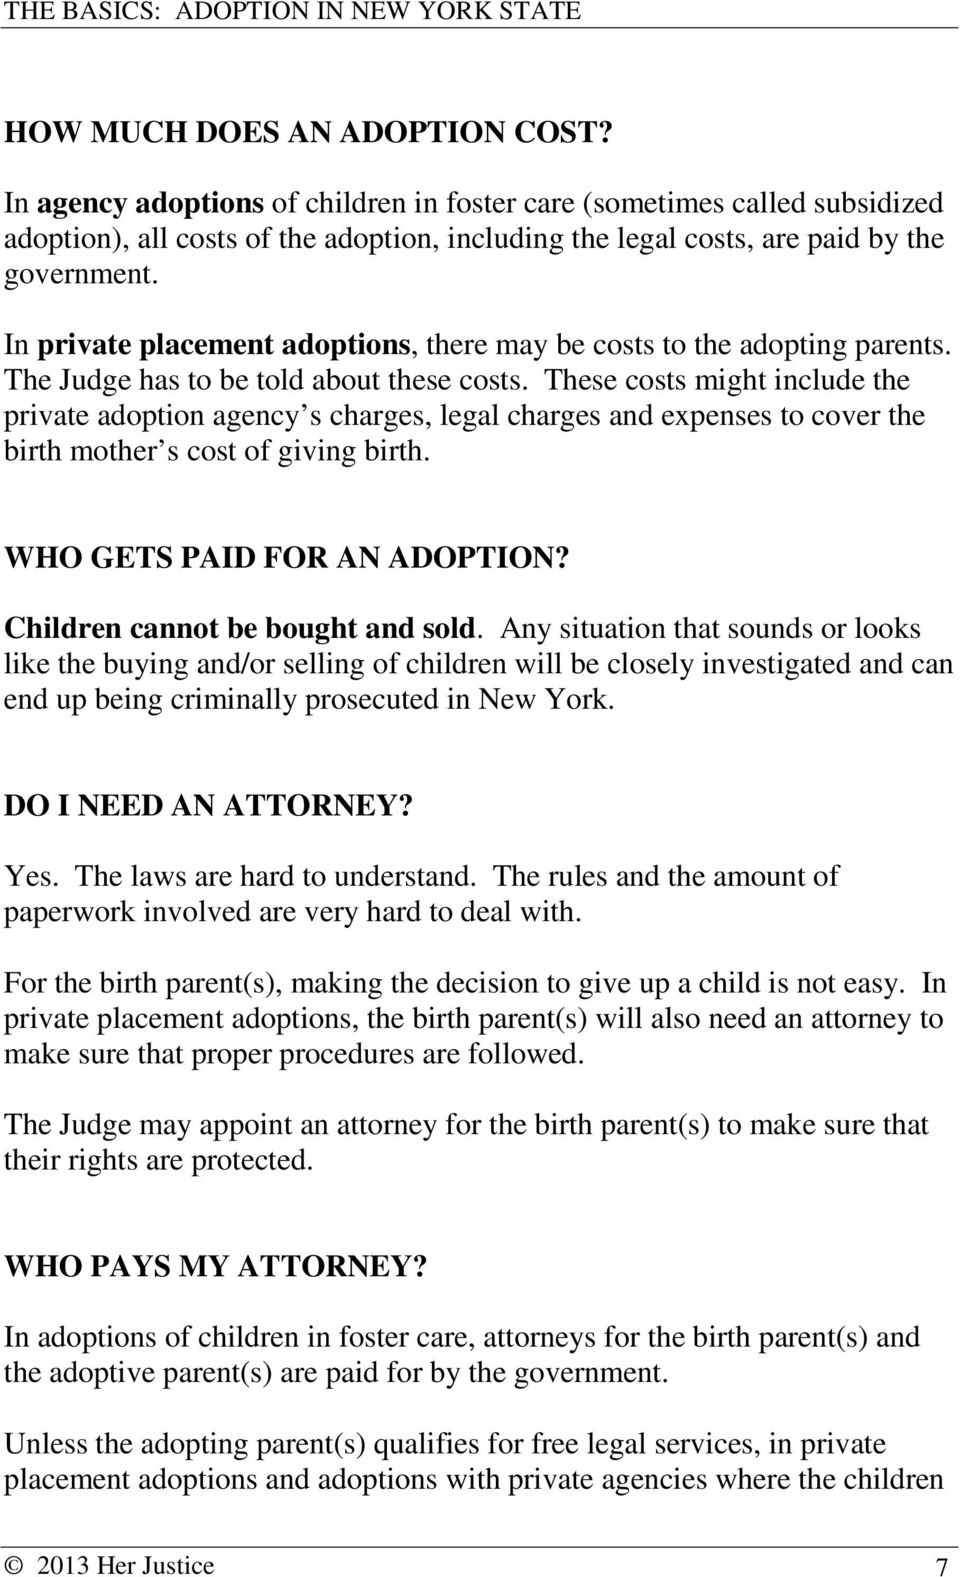 These costs might include the private adoption agency s charges, legal charges and expenses to cover the birth mother s cost of giving birth. WHO GETS PAID FOR AN ADOPTION?